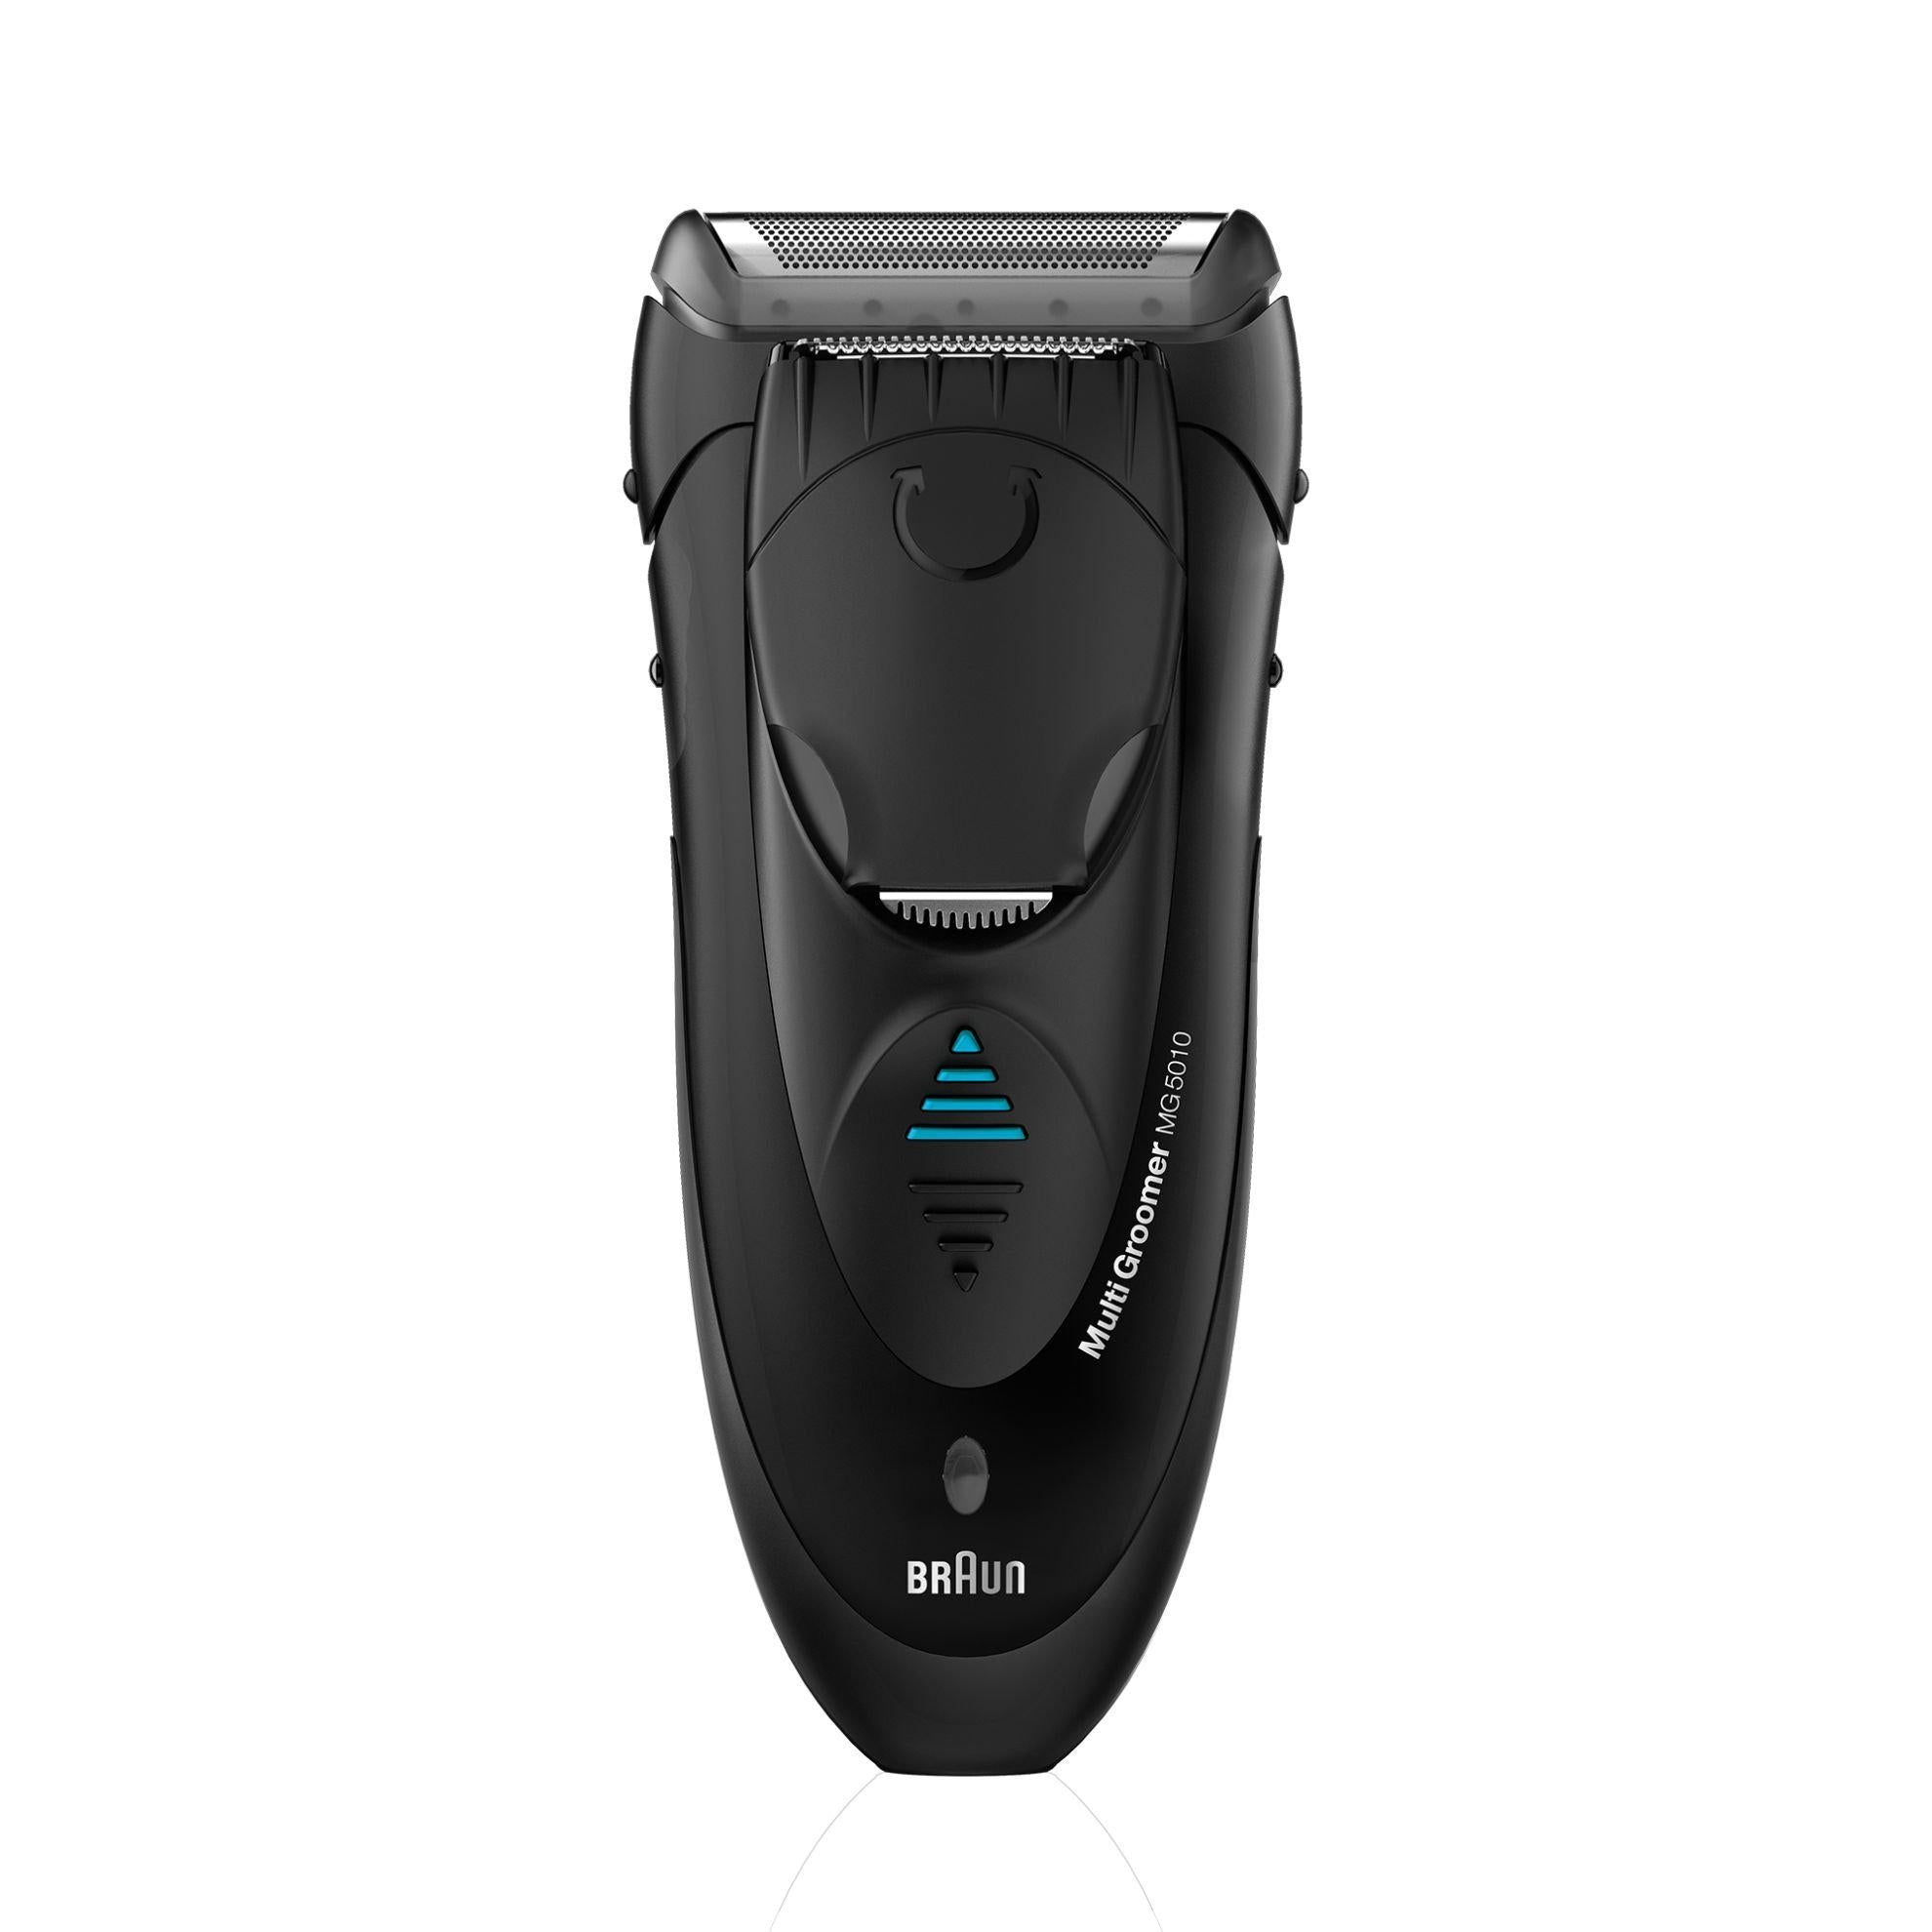 Braun MG5010 Wet and Dry Electric Shaver - Braun - Pazarska